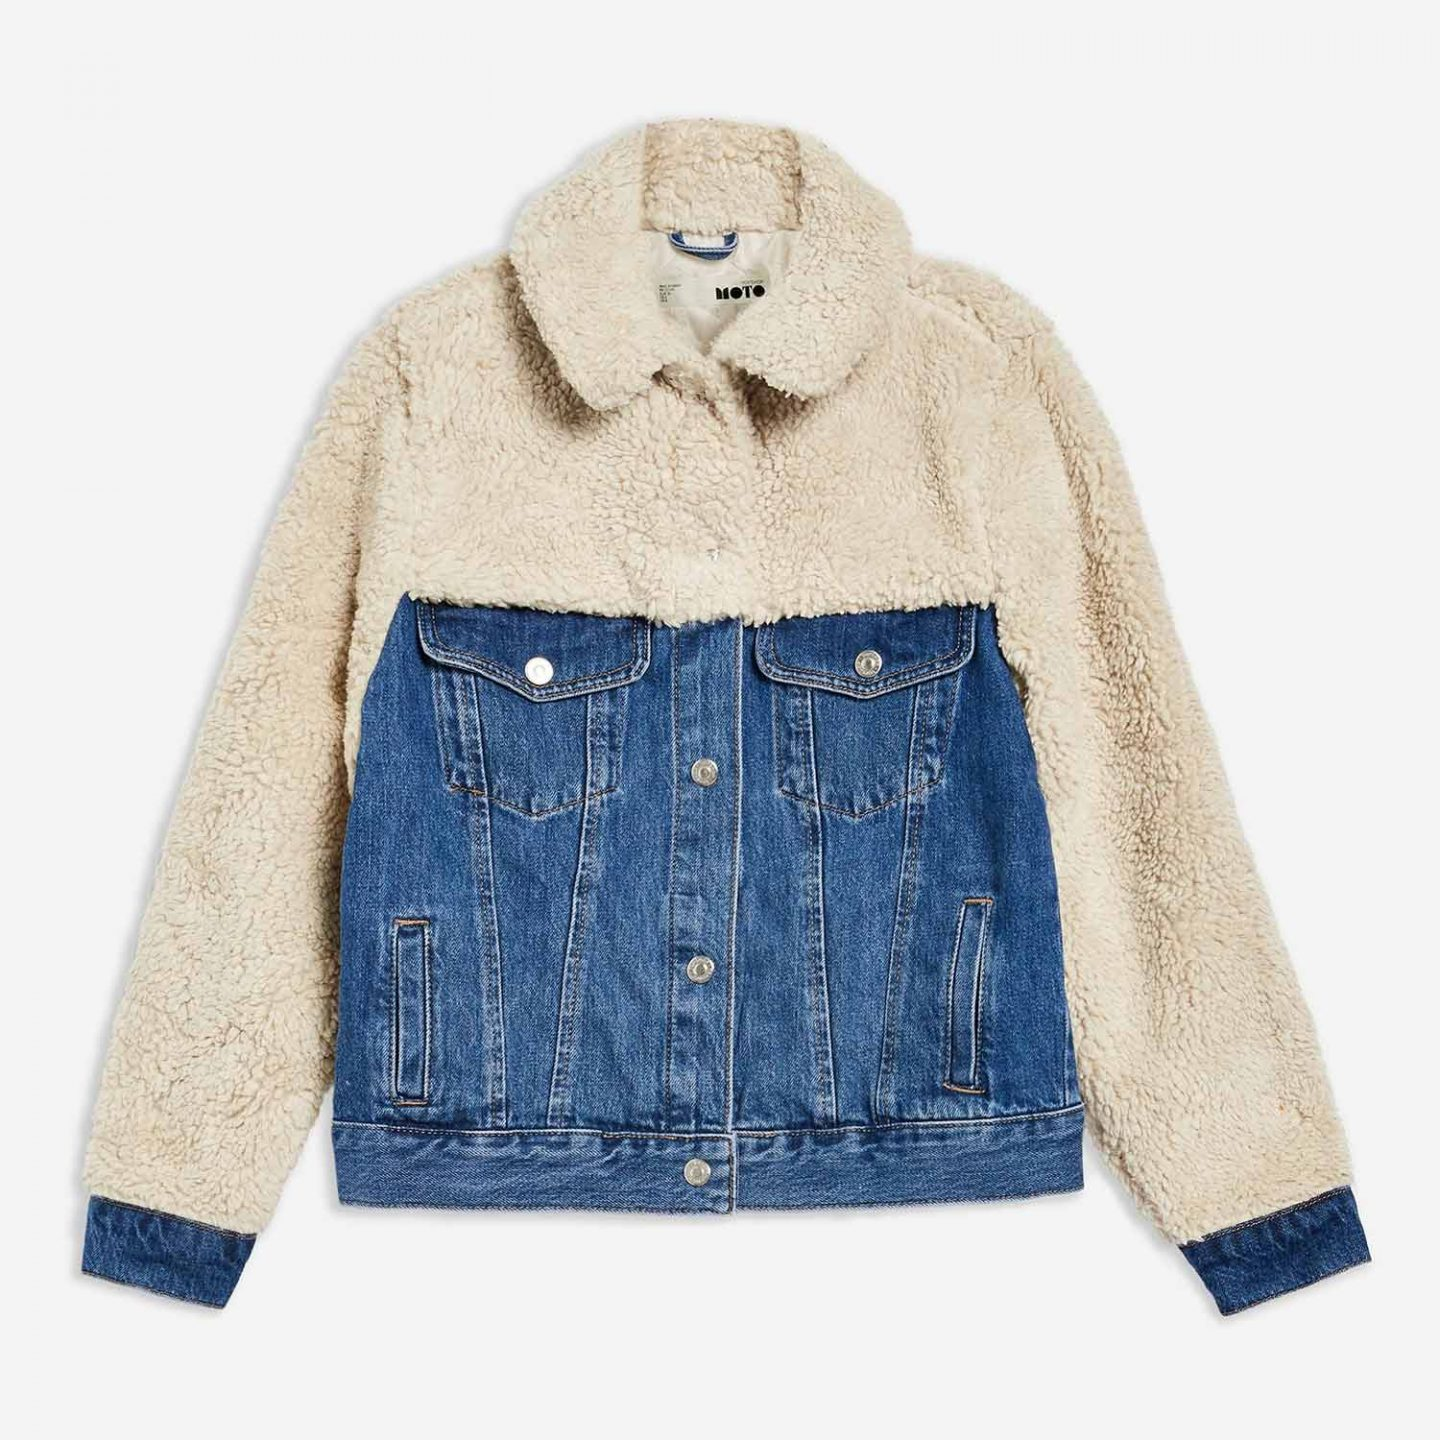 The Topshop Denim Borg Jacket Everyone Is Talking About